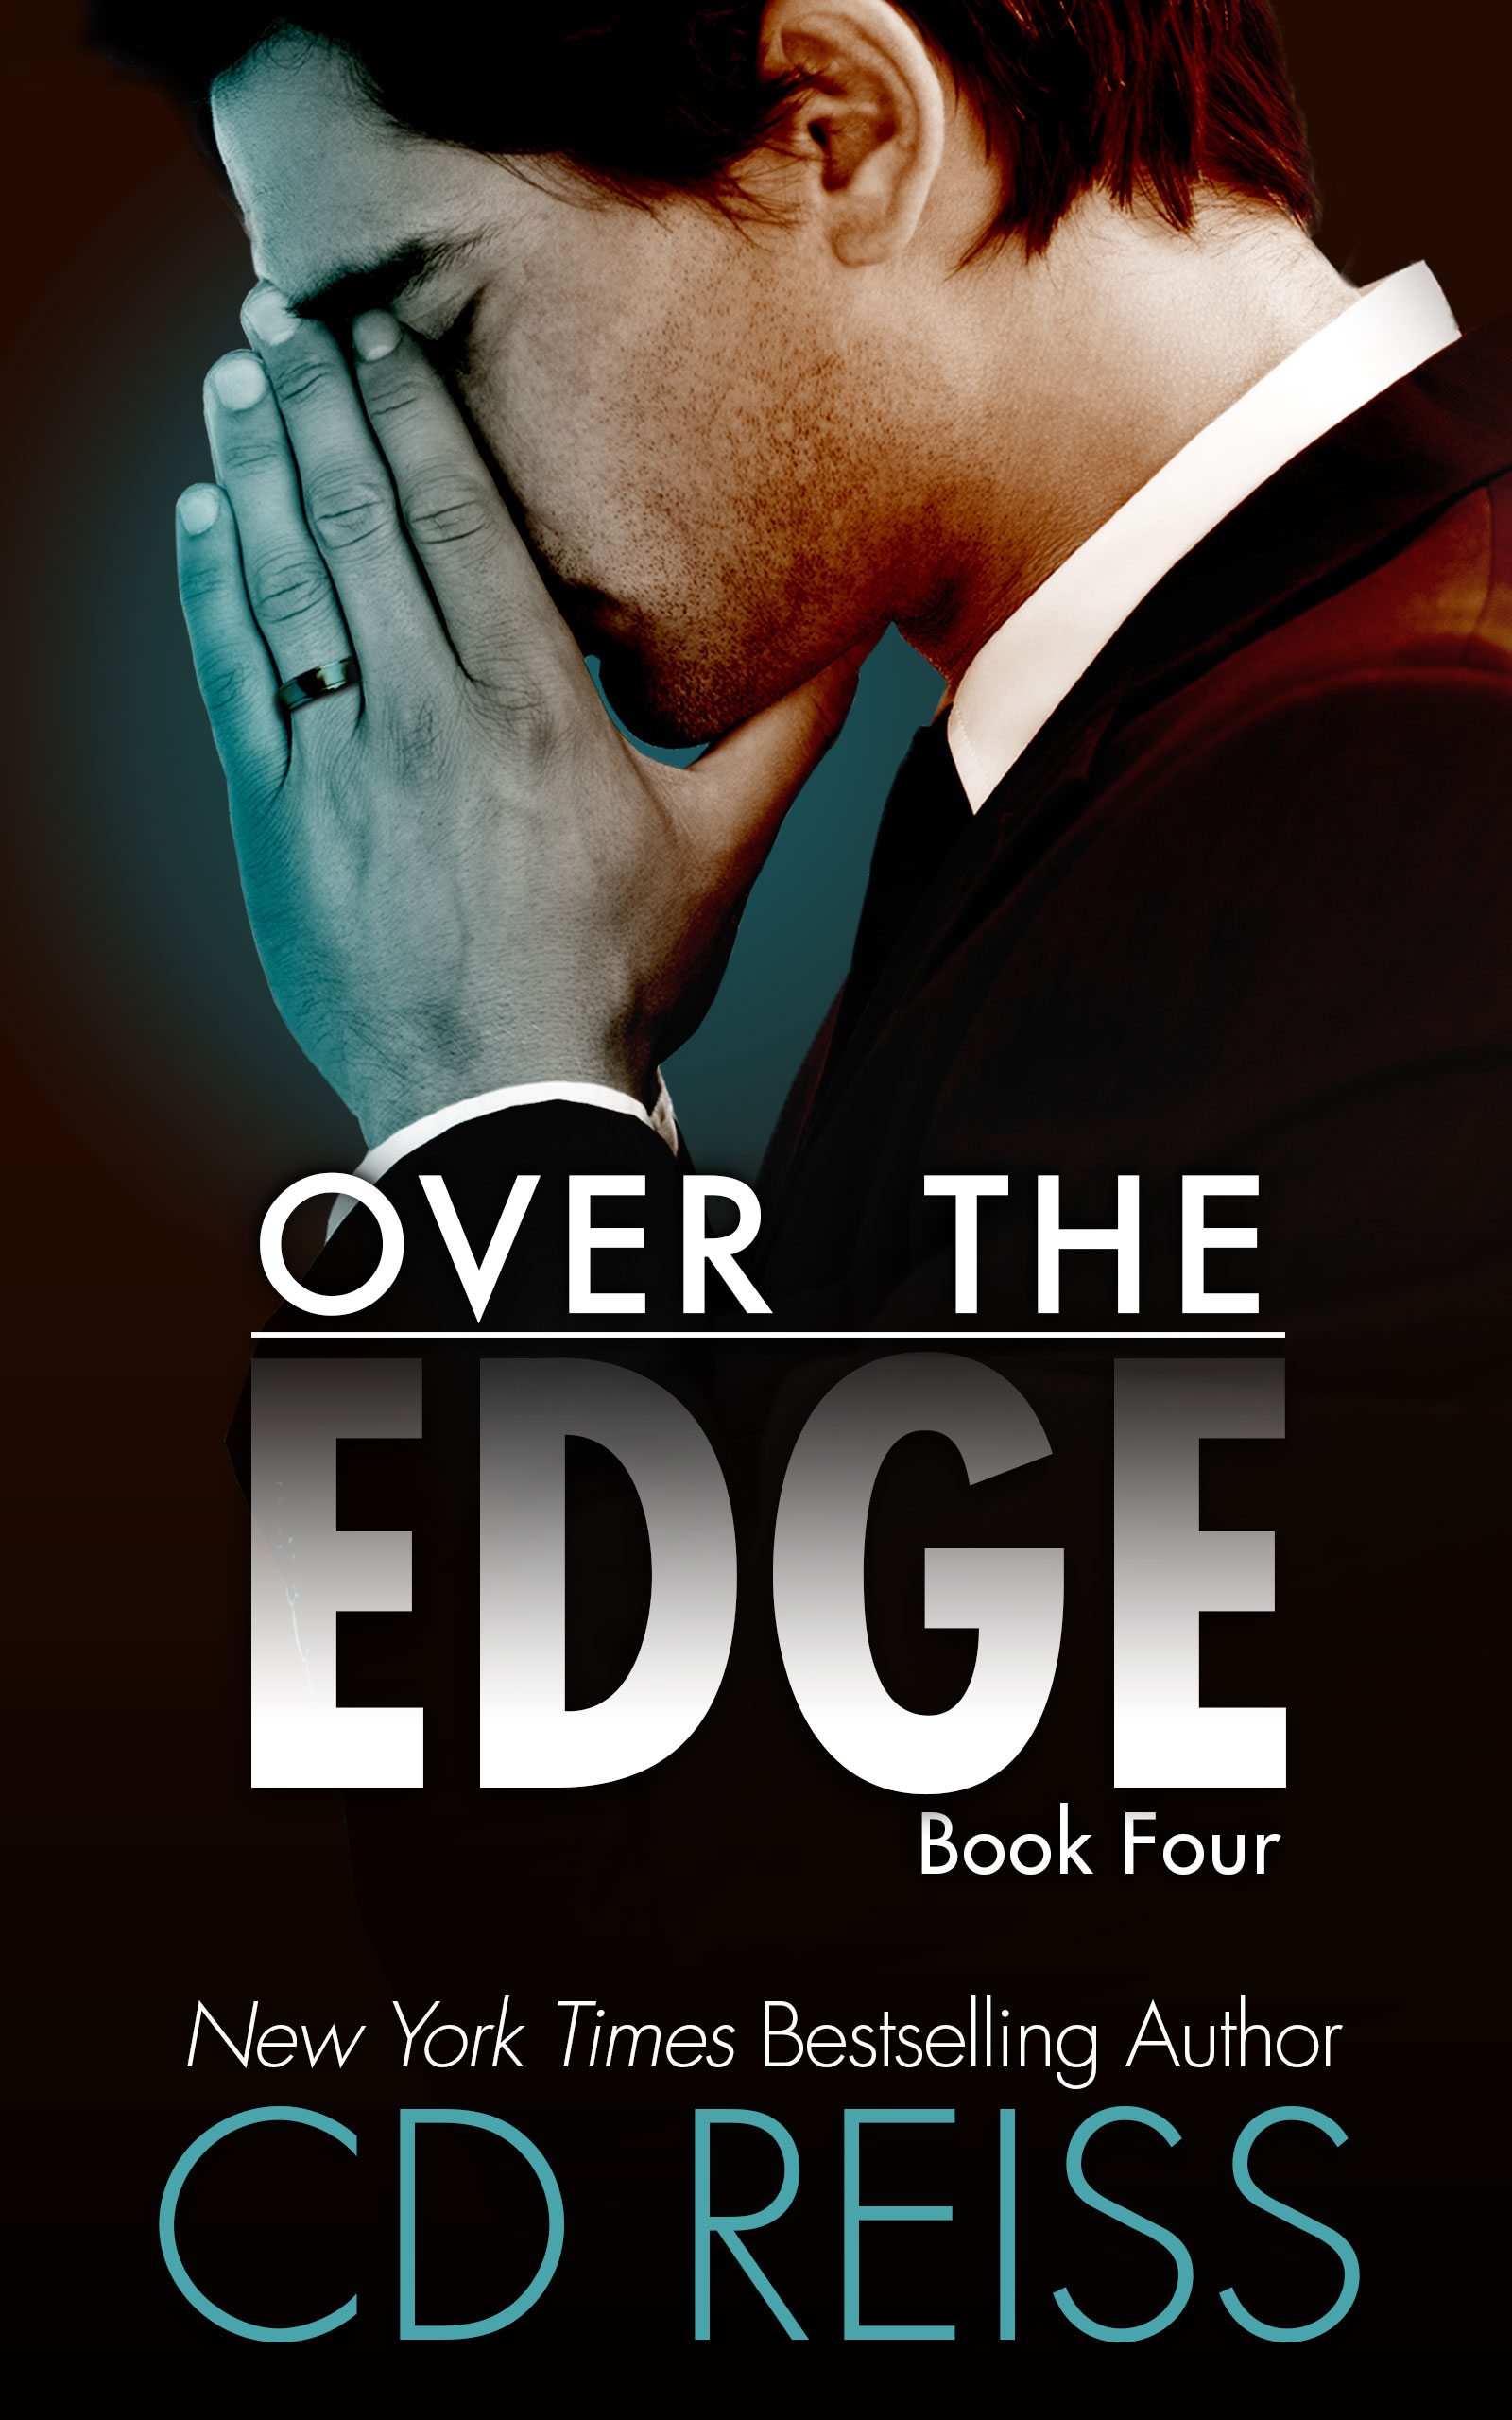 Over the Edge, book four of the new Edge Series by New York Times bestselling Romance Author CD Reiss